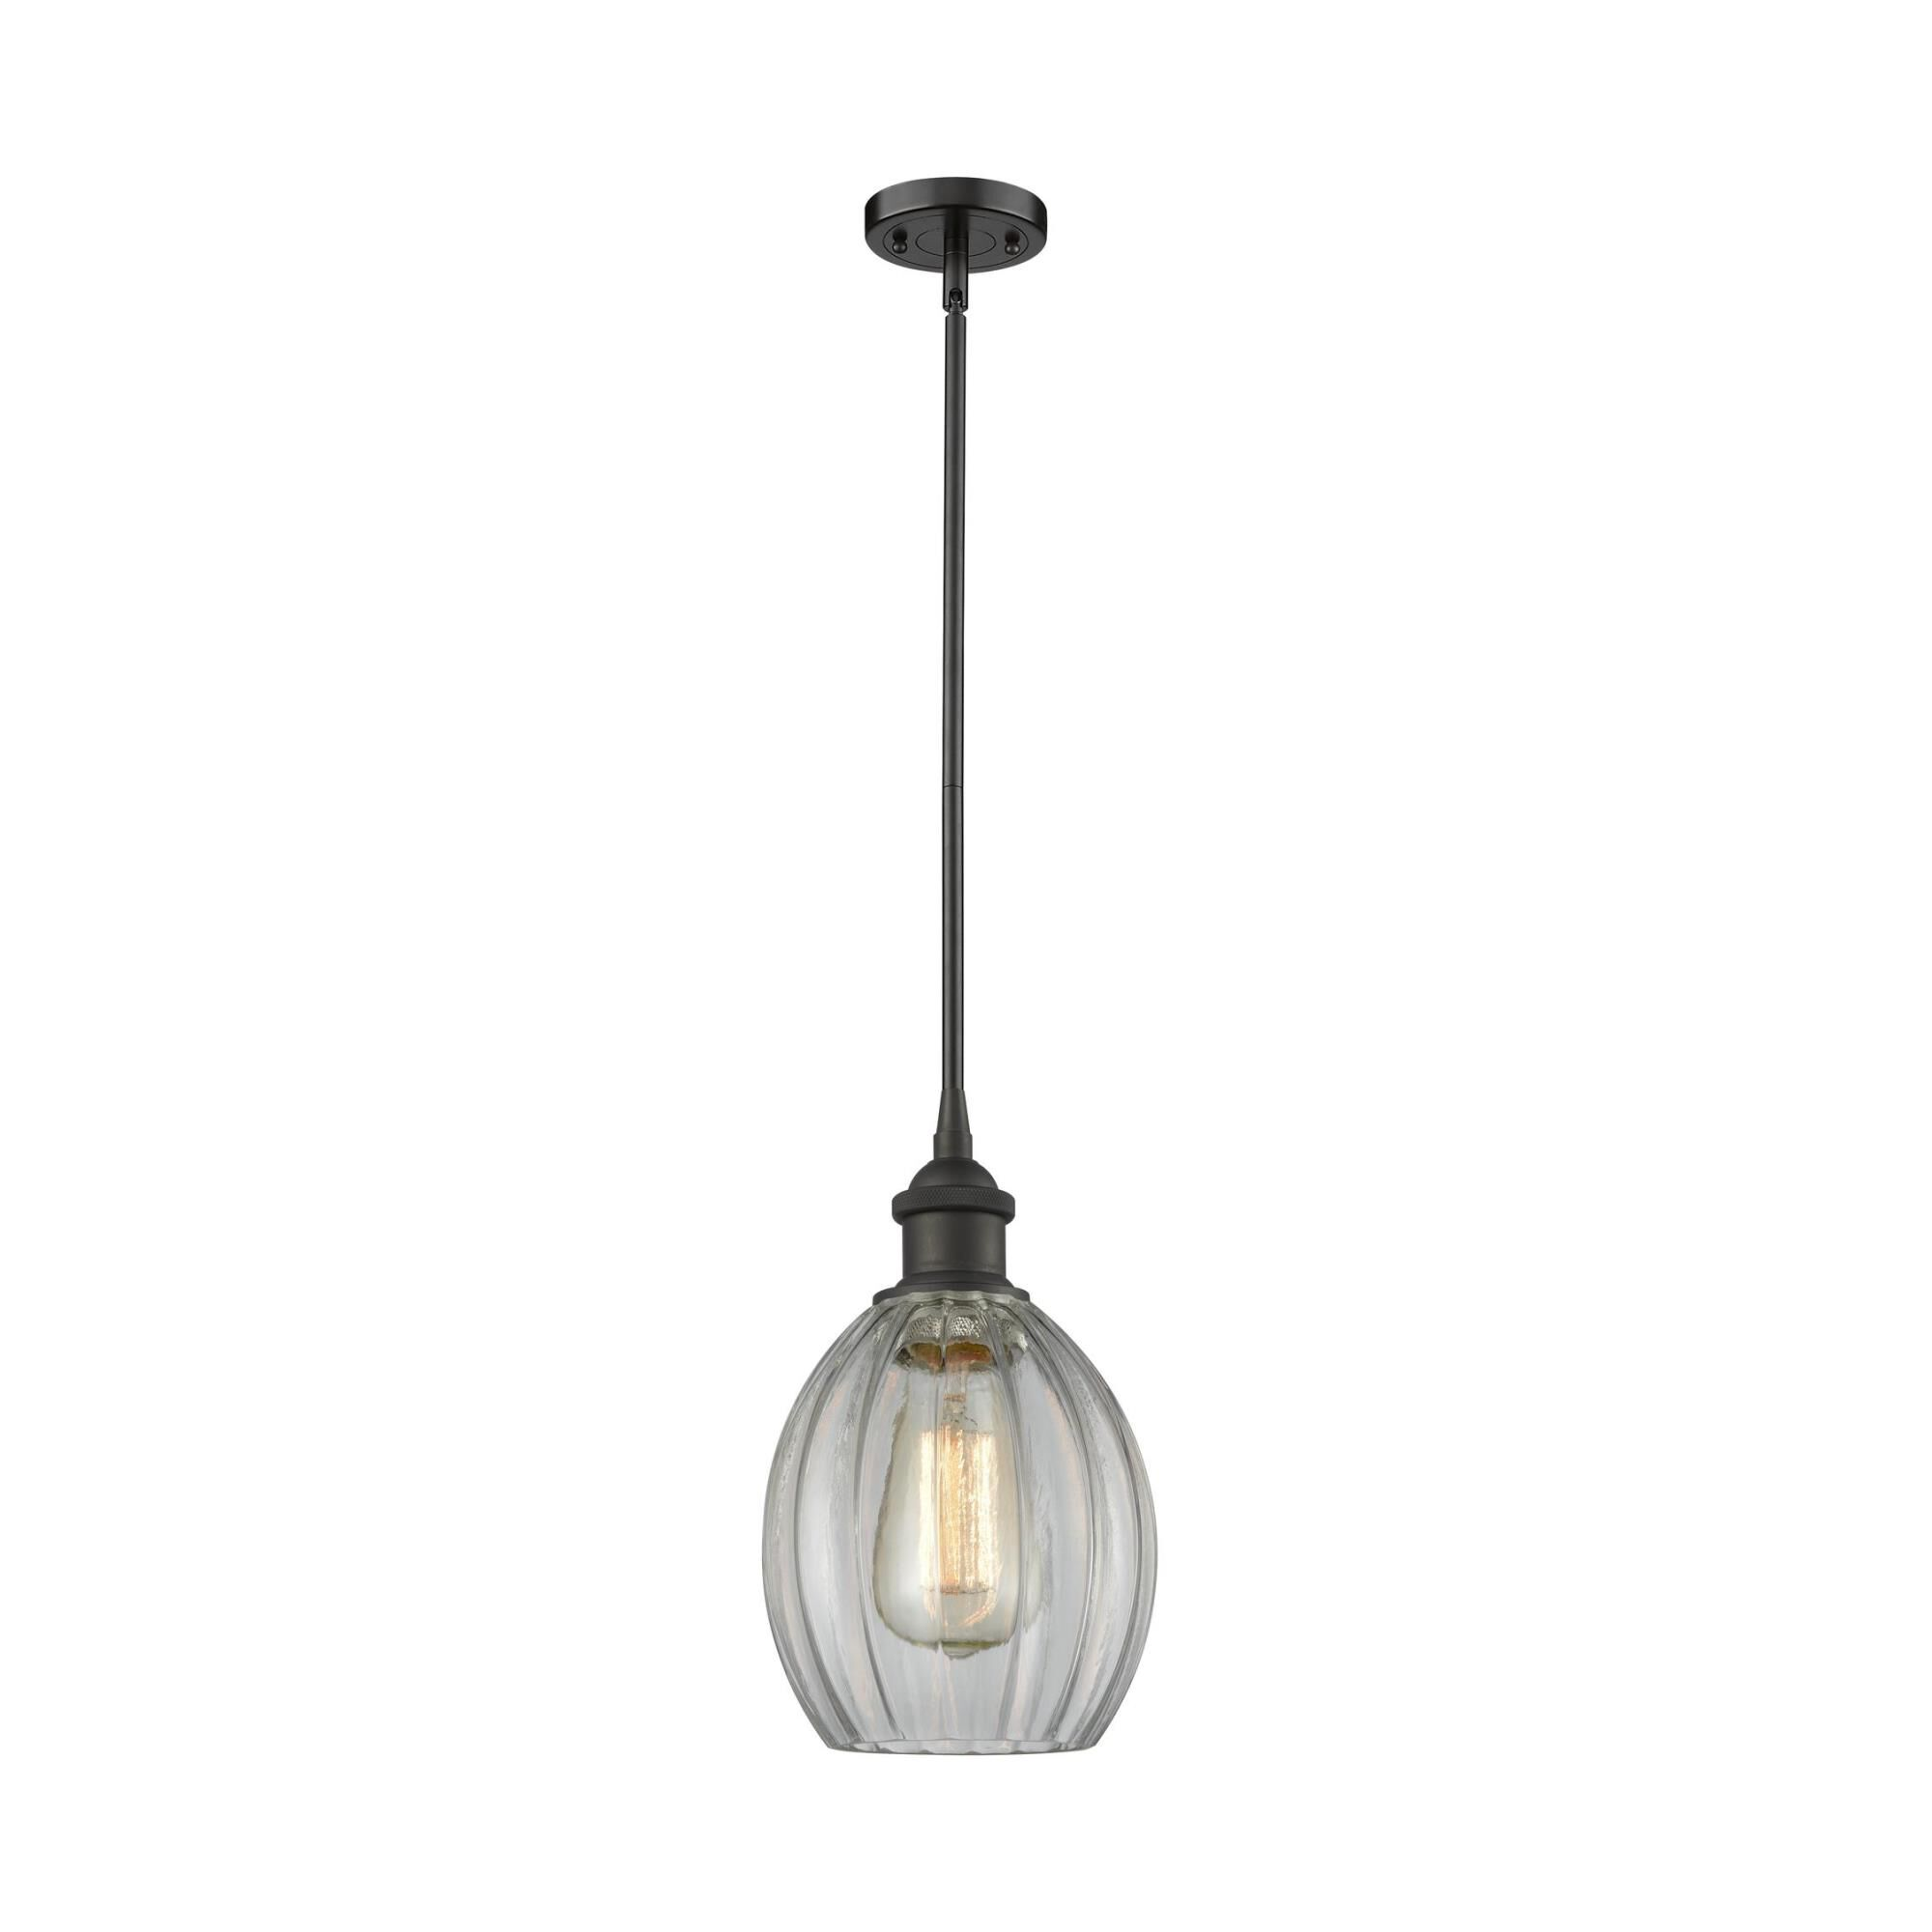 Innovations Lighting Bruno Marashlian Eaton 6 Inch Mini Pendant Eaton - 516-1S-OB-G82 - Restoration-Vintage Mini Pendant